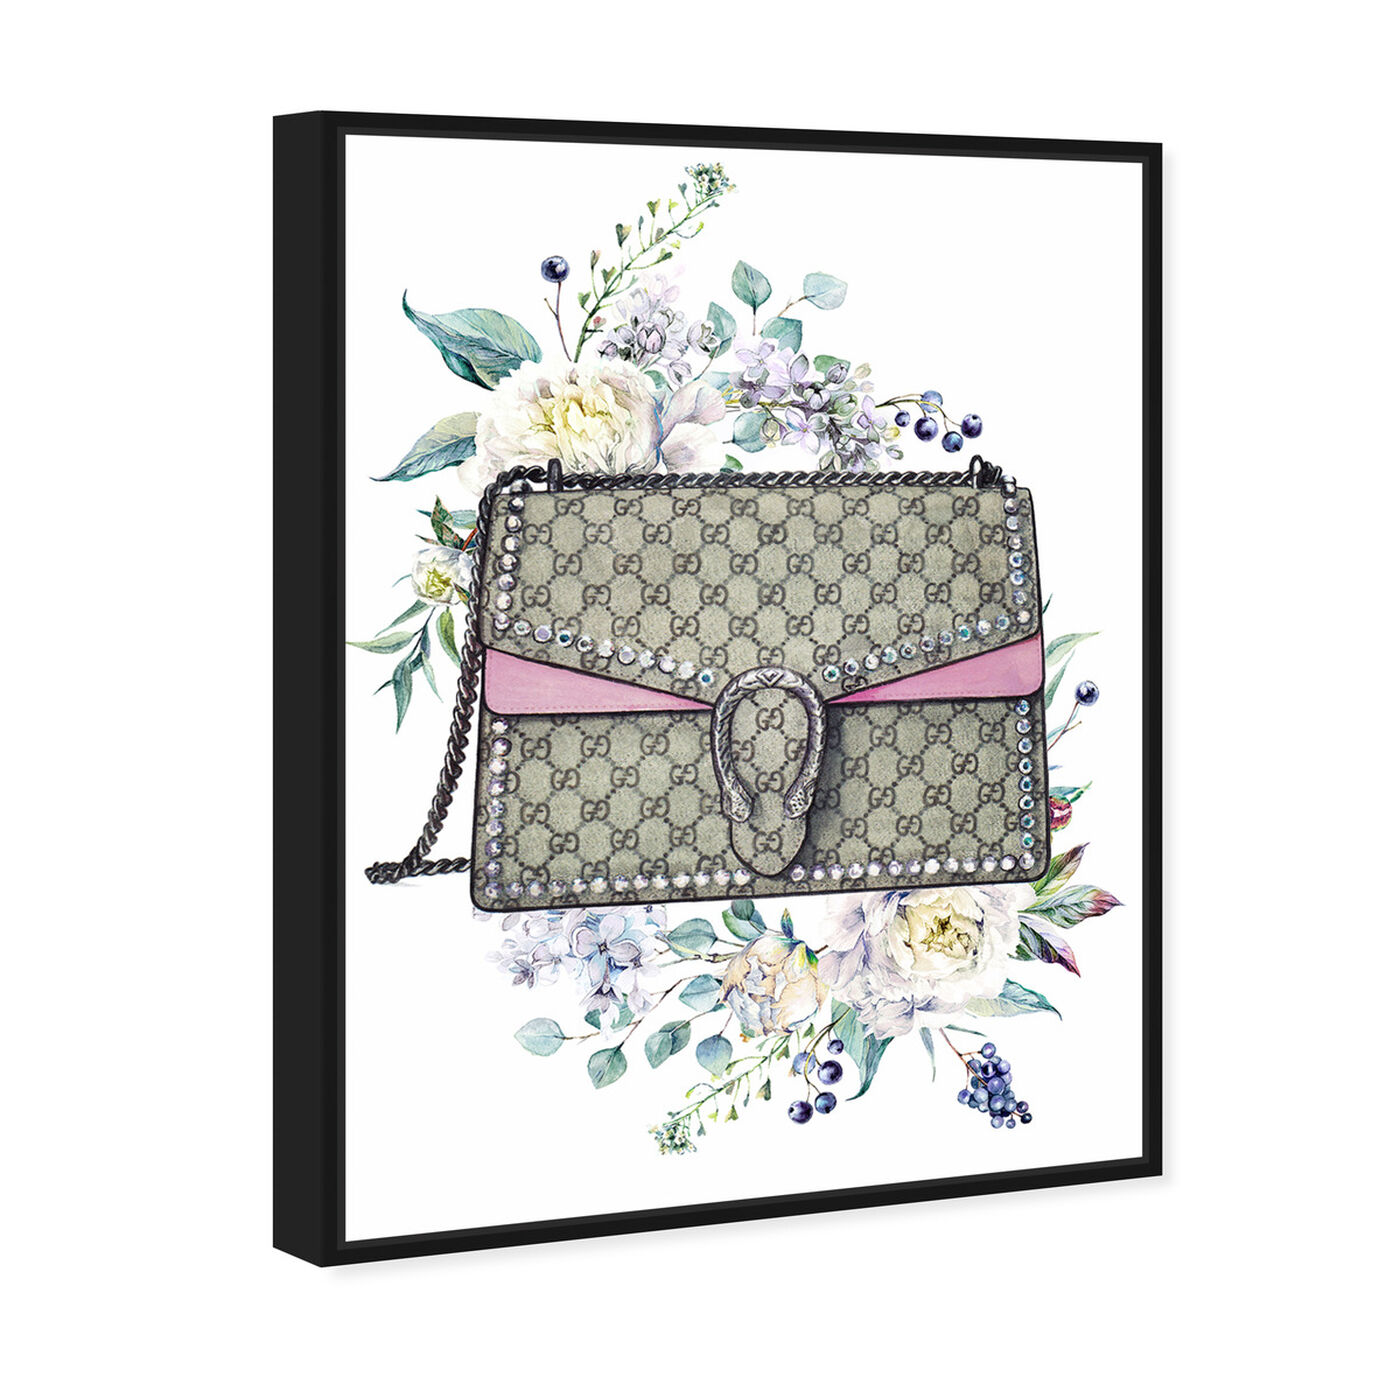 Angled view of Doll Memories - Classic featuring fashion and glam and handbags art.